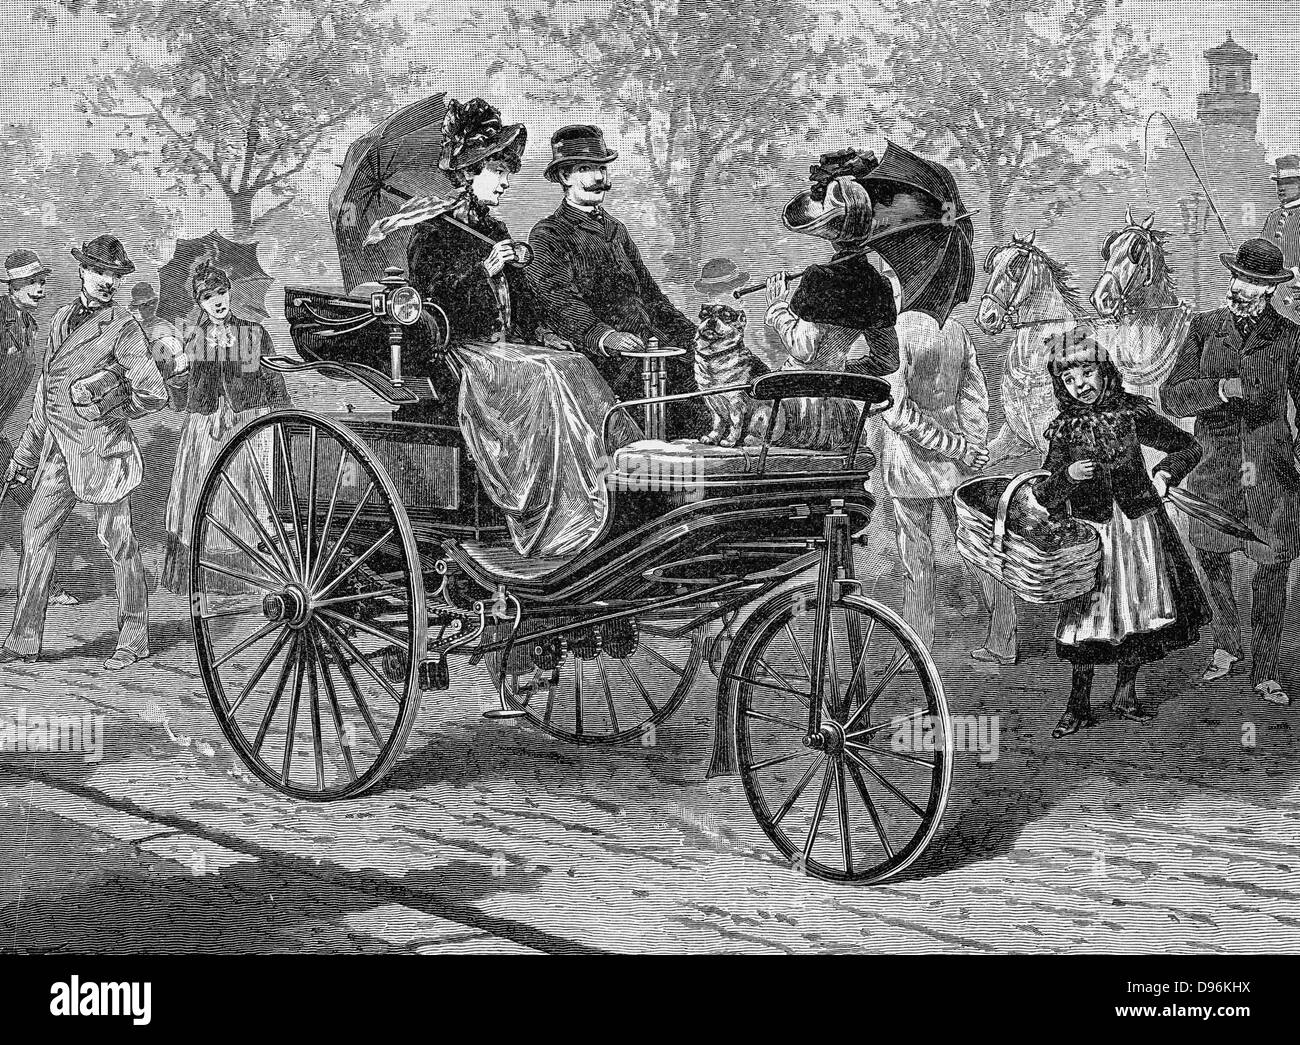 Petrol-driven car by Benz & Co., capable of 16 km per hour. Engraving published Leipzig c1895. - Stock Image